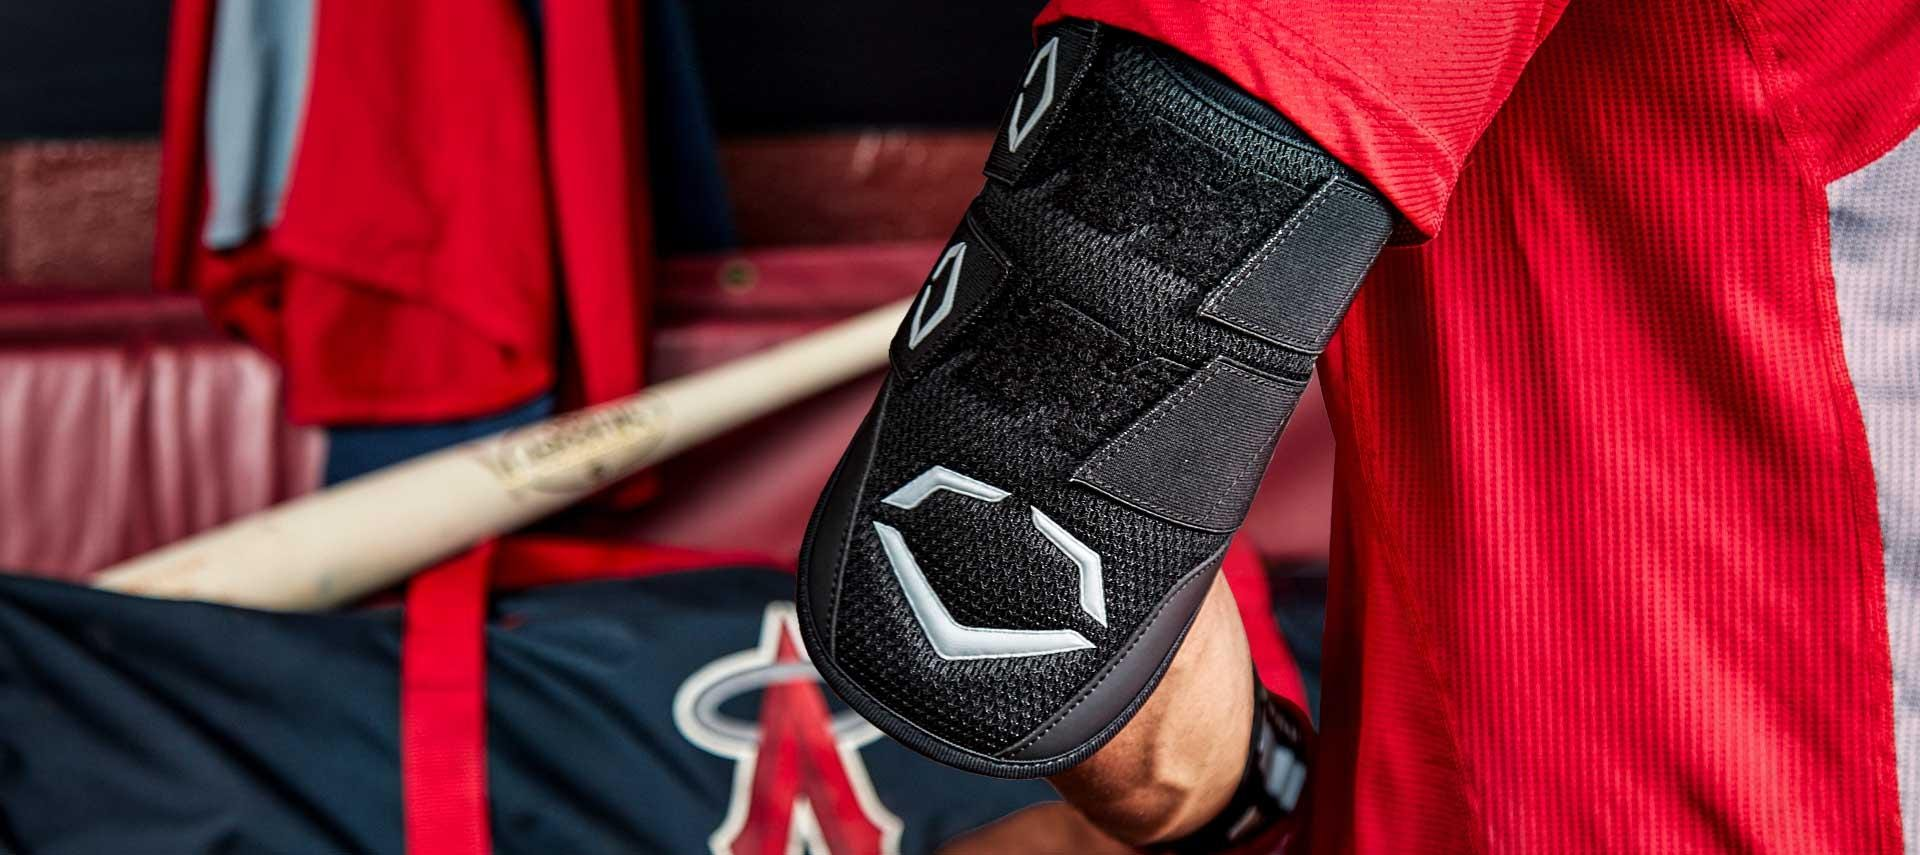 Baseball player wearing Pro-SRZ Elbow Guard